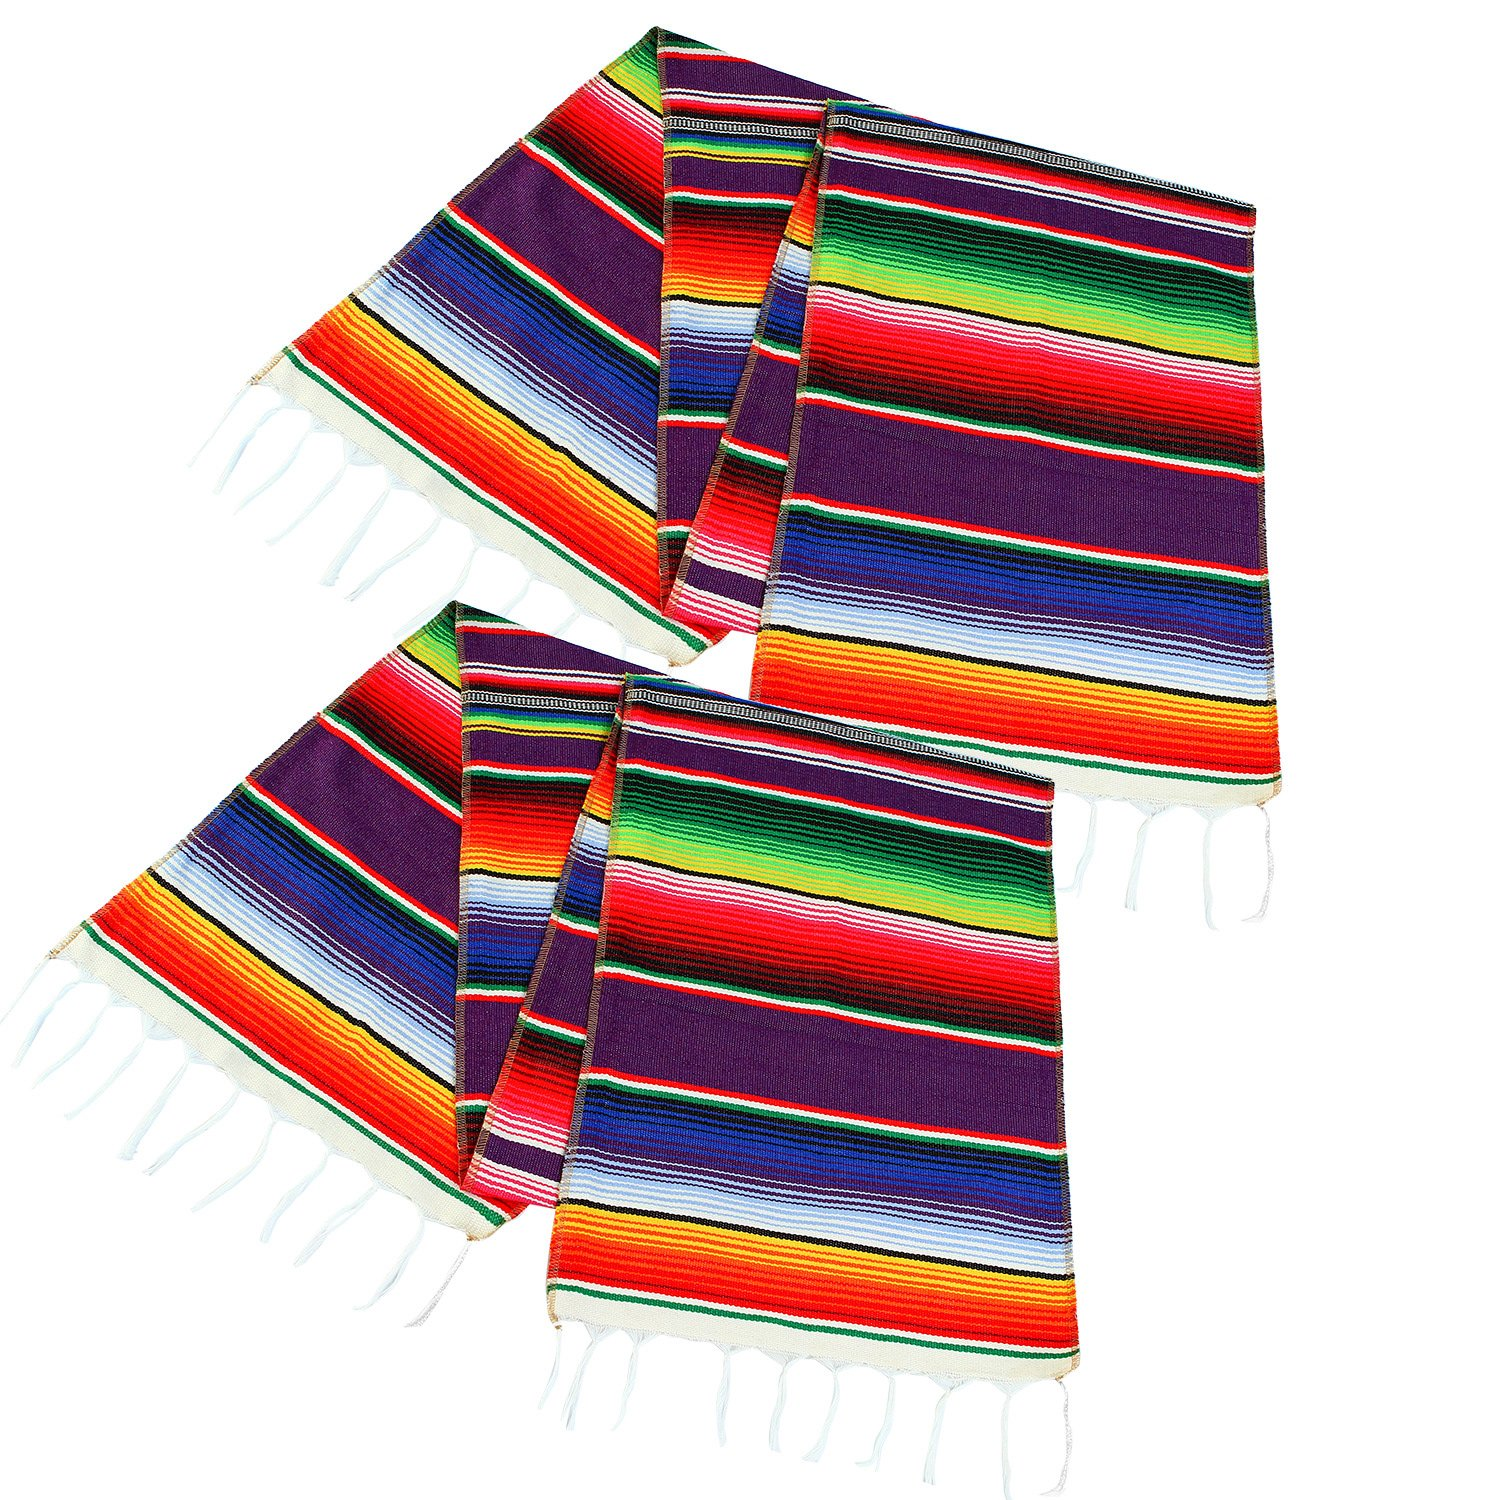 Aneco 2 Pack 14 by 84 Inches Mexican Table Runner Mexican Serape Blanket Cotton Colorful Fringe Table Runners  for Mexican Wedding Party Kitchen Outdoor Decorations